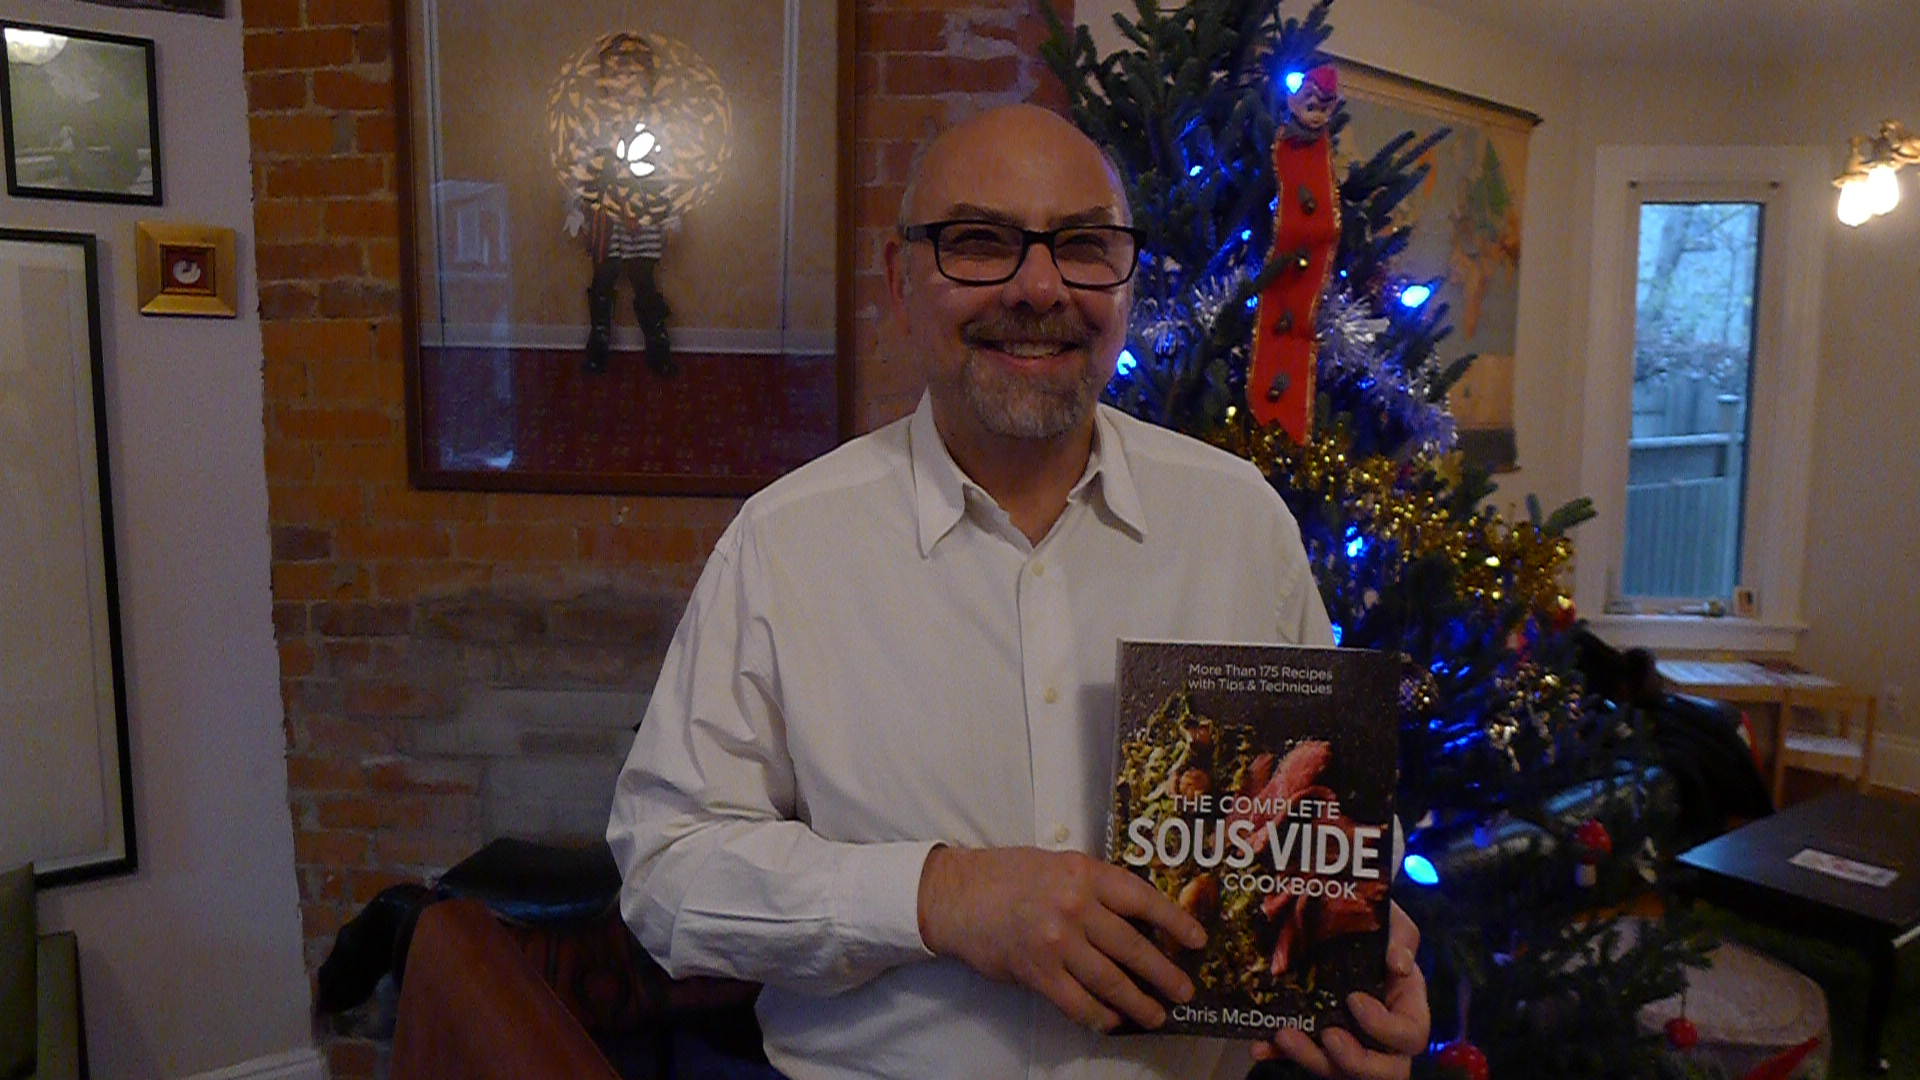 Chef Chris McDonald is quite proud of his long-researched book on sous vide cooking, and rightfully so!